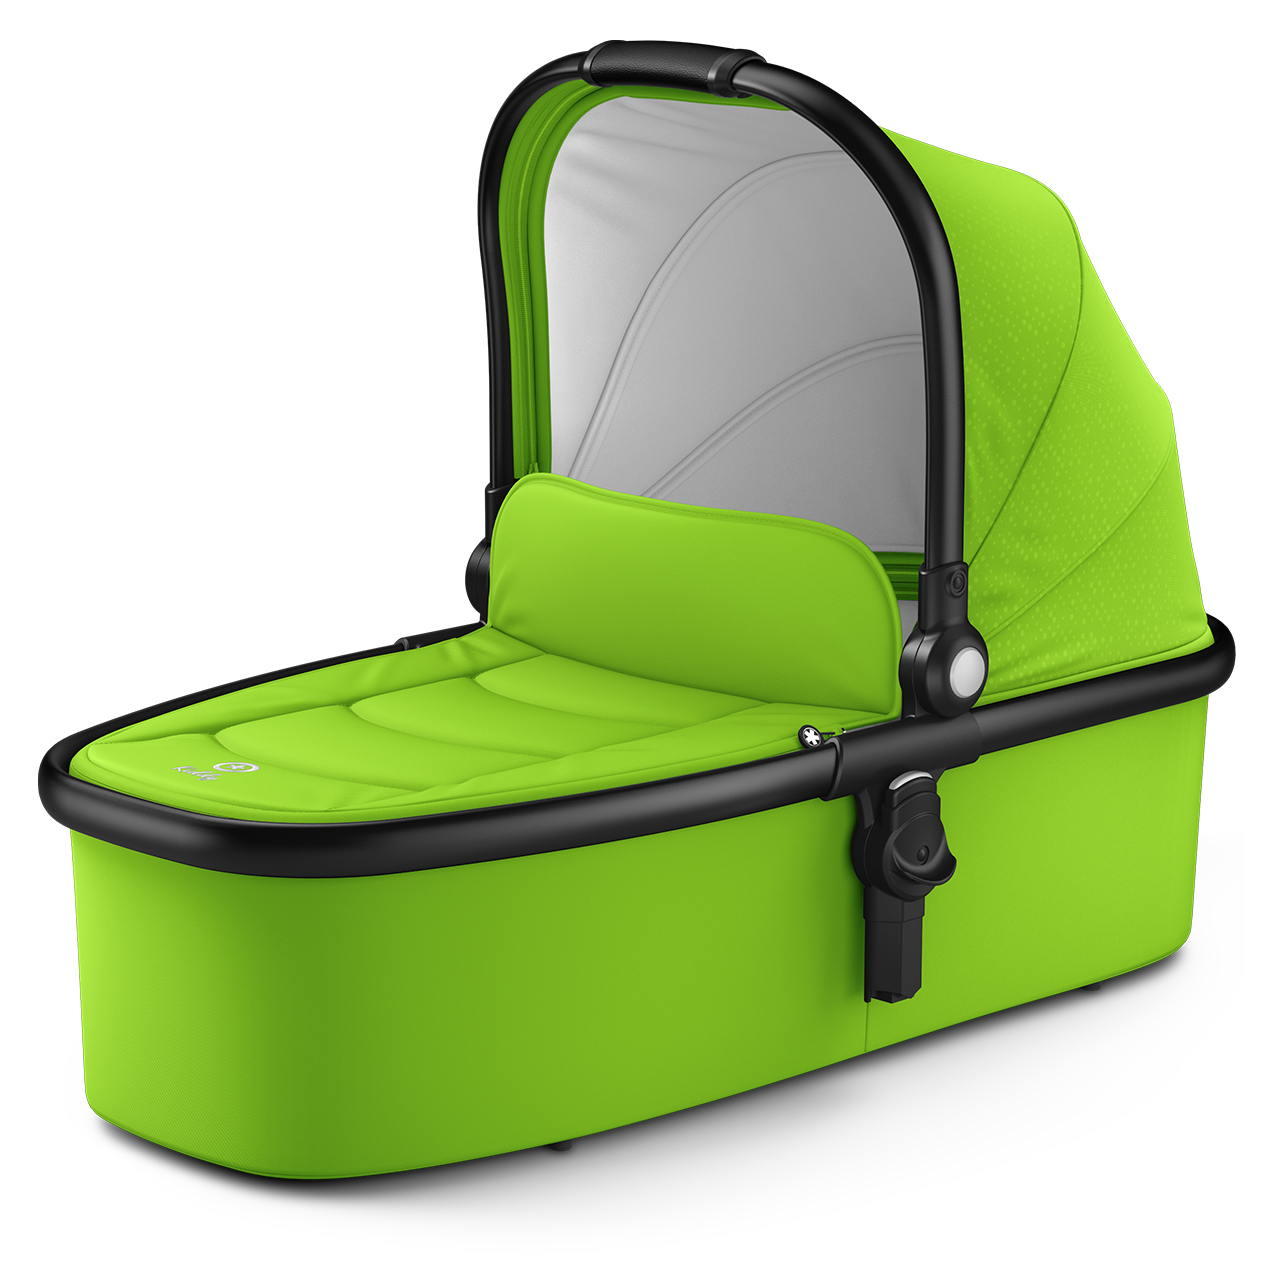 Kiddy vanička Evostar Lime Green